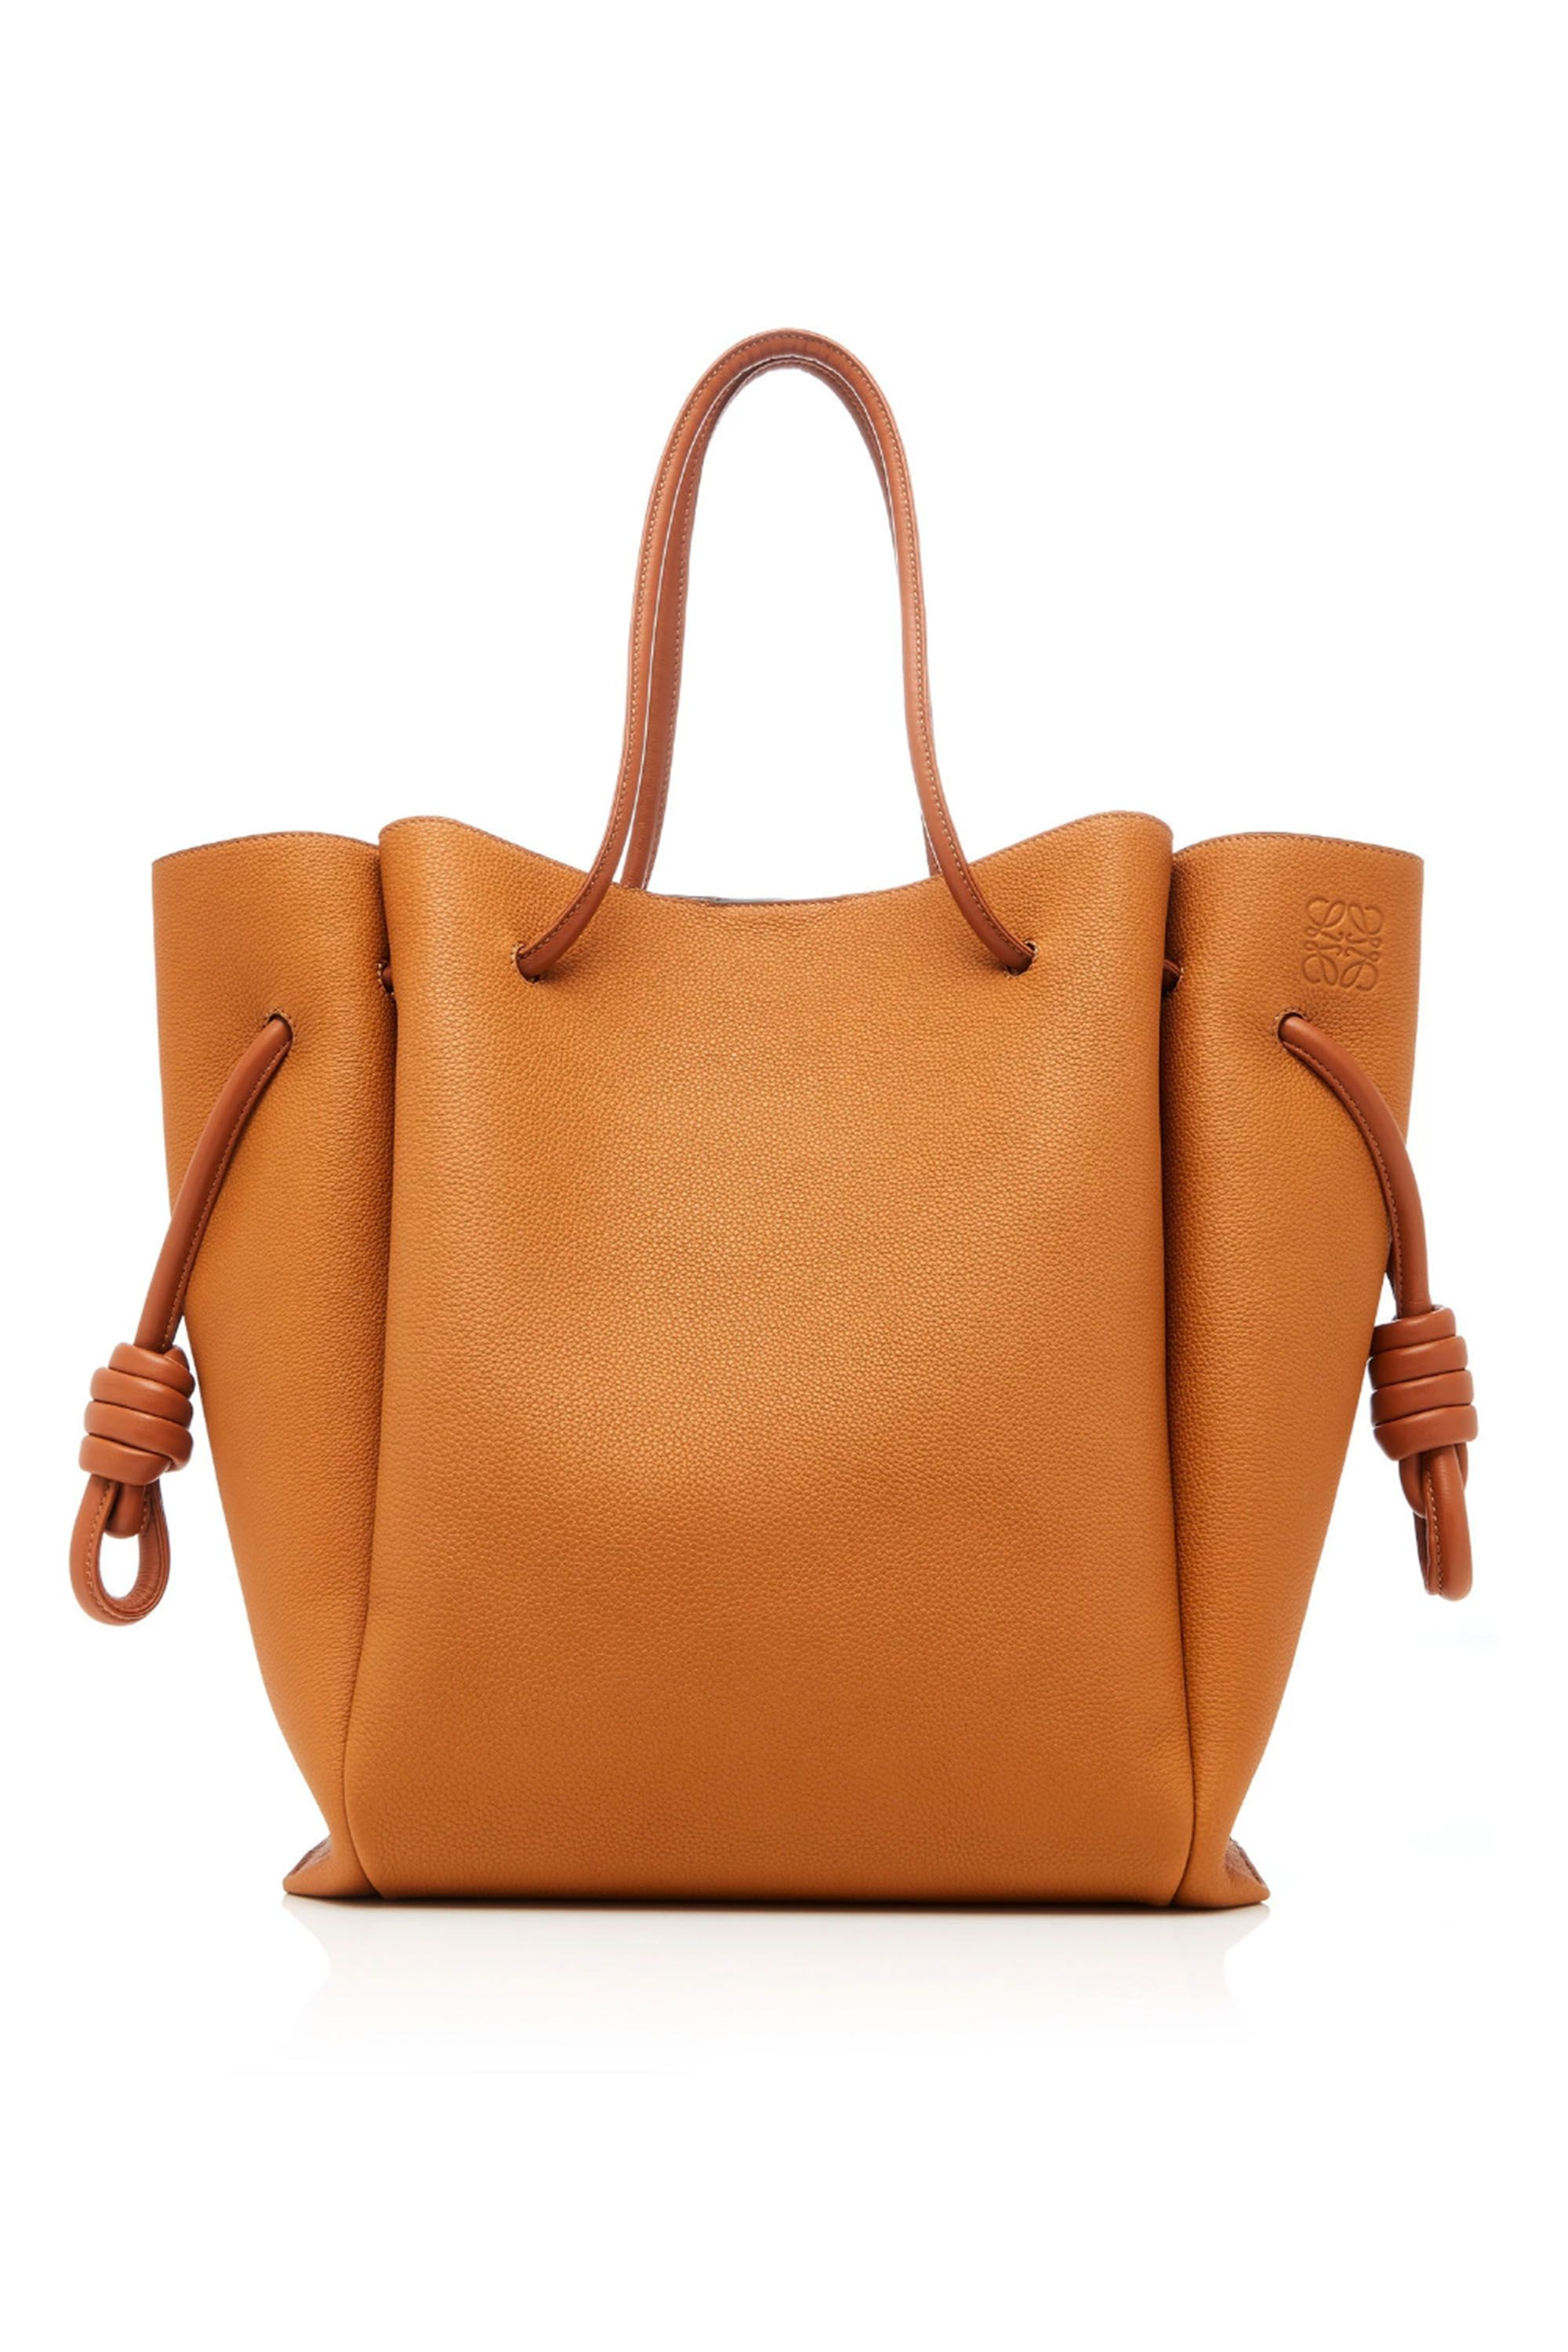 3e031d3558b6 15 Cute Designer Laptop Totes for Work - Best Laptop Tote Bags for Women